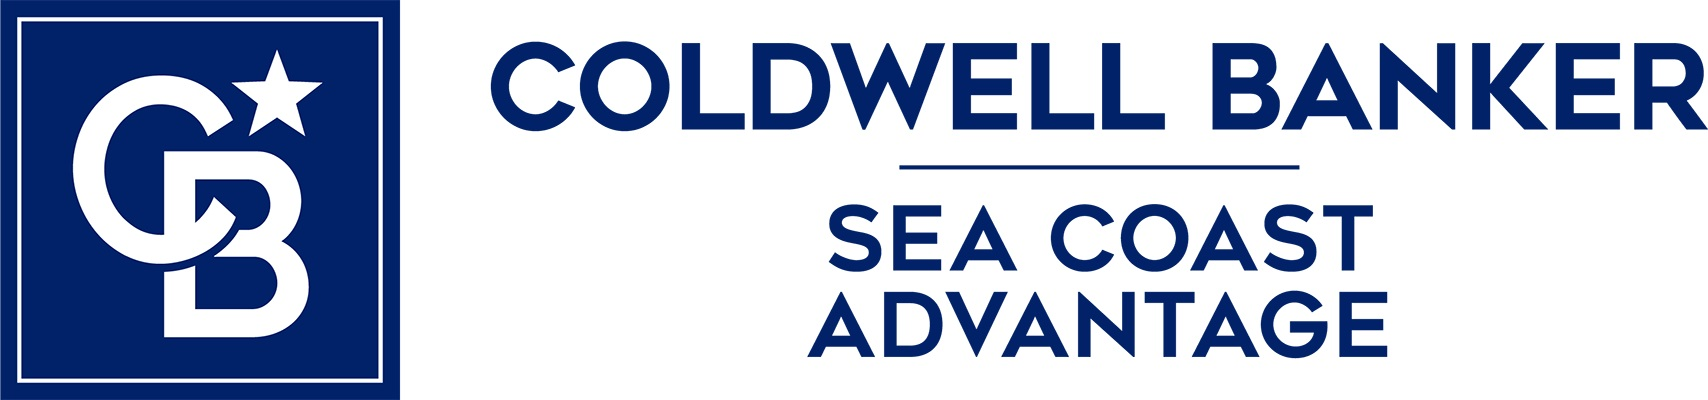 Tammy Poole - Coldwell Banker Sea Coast Advantage